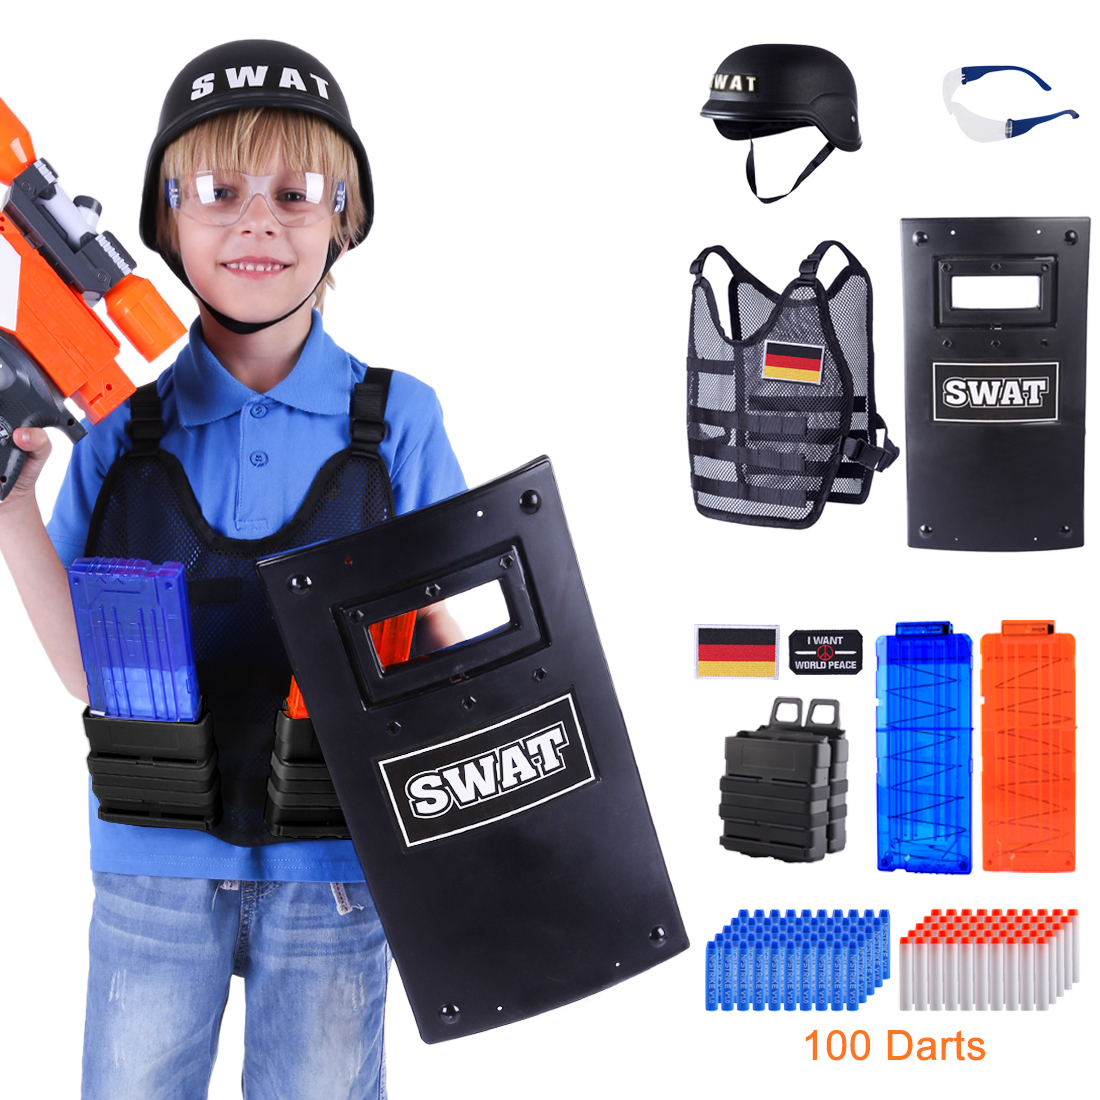 Adjustable Tactical Molle Wear Military SWAT Costume For Nerf N-strike Elite Series Game/6-12 Years Olds Boys -German Toy Style